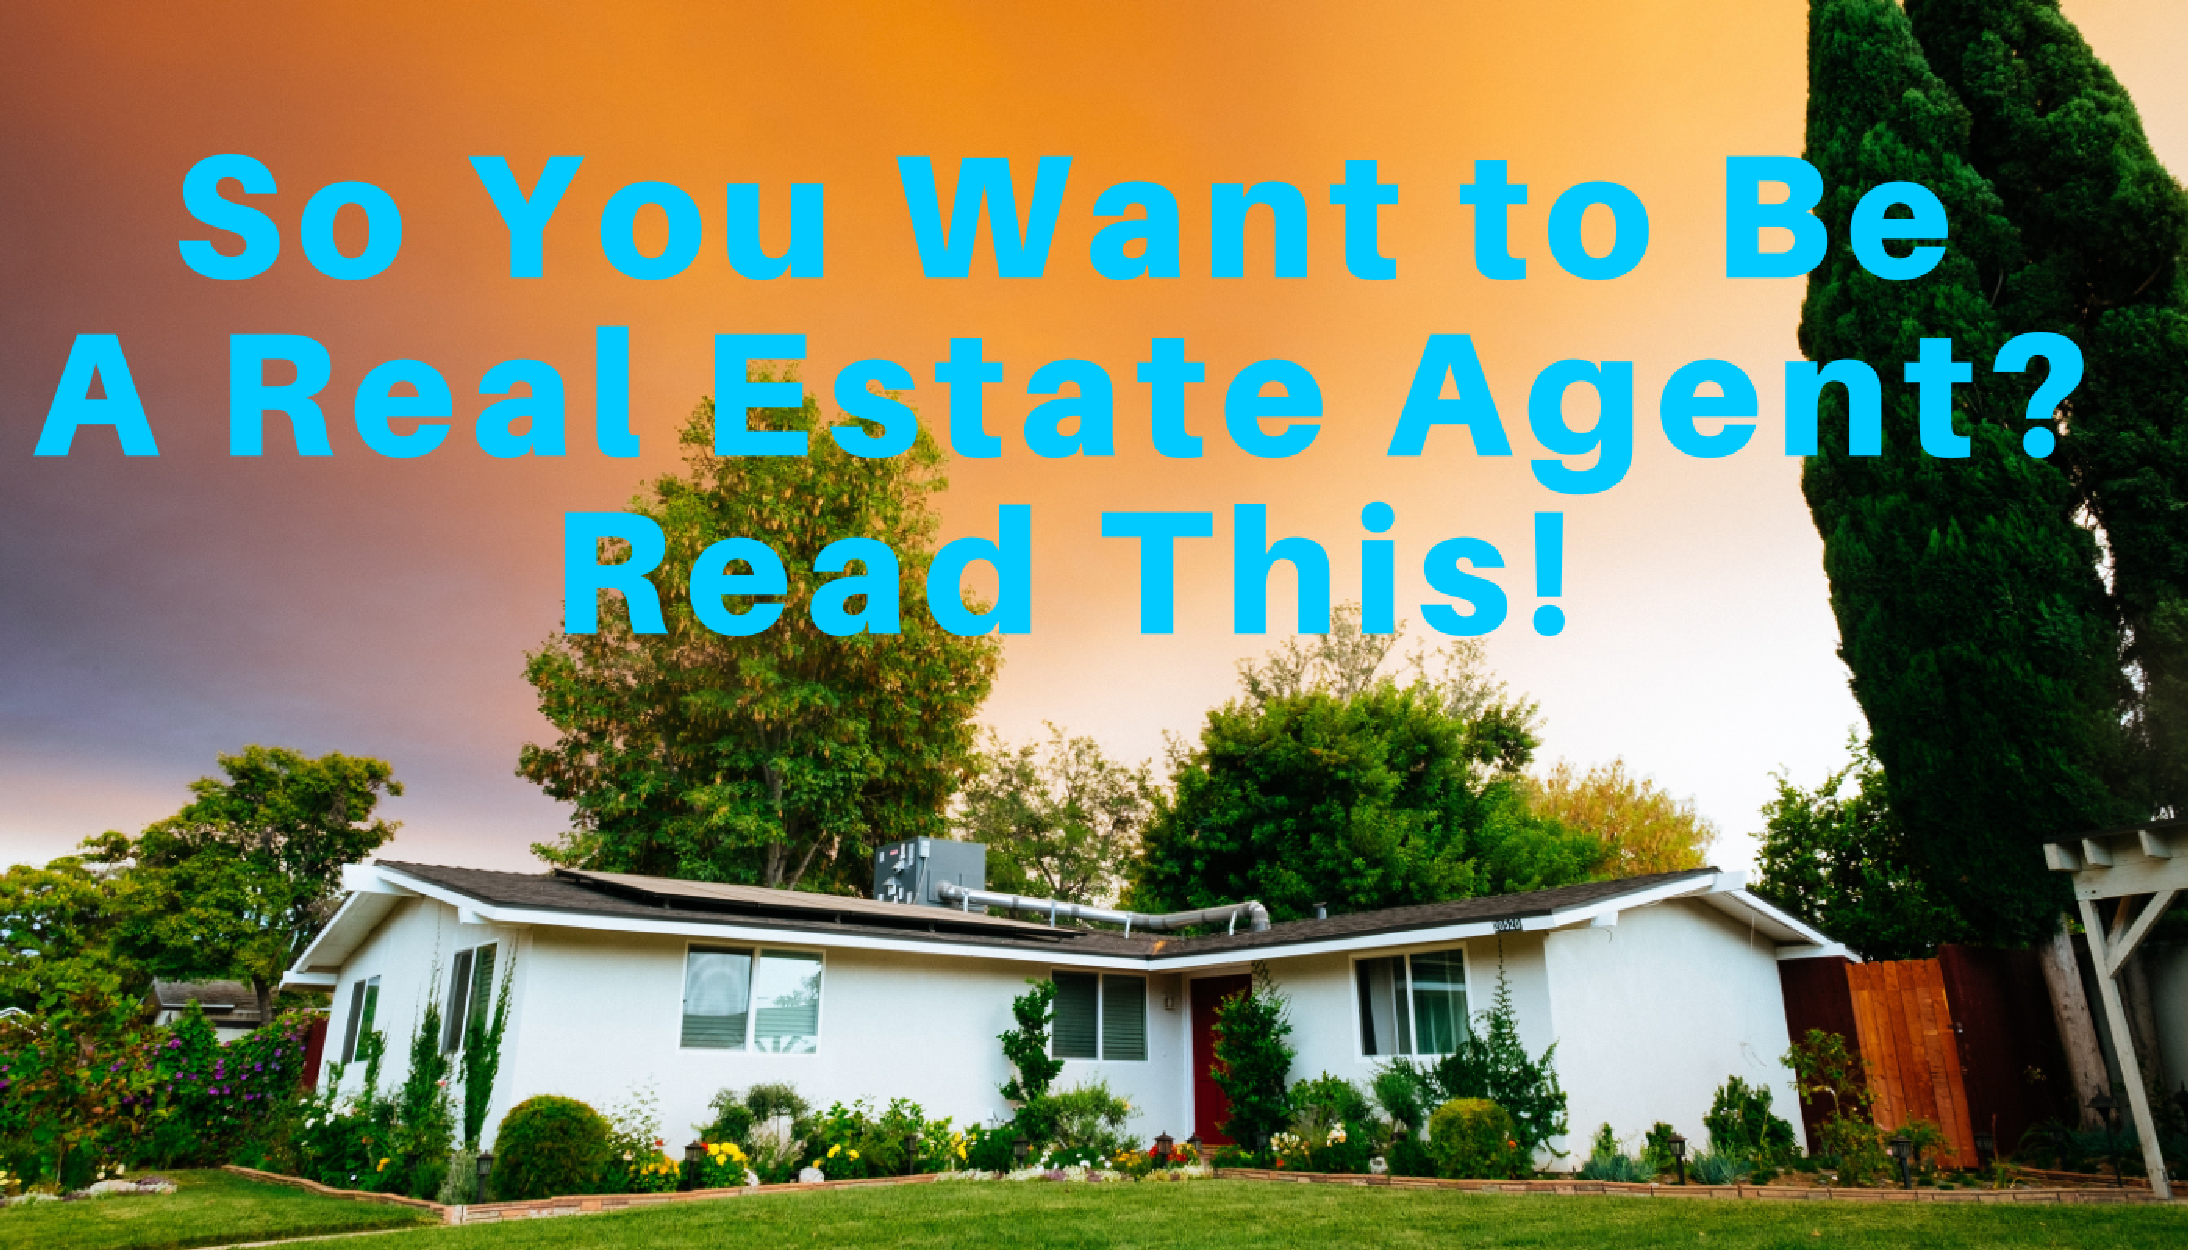 So you want to be a real estate agent?